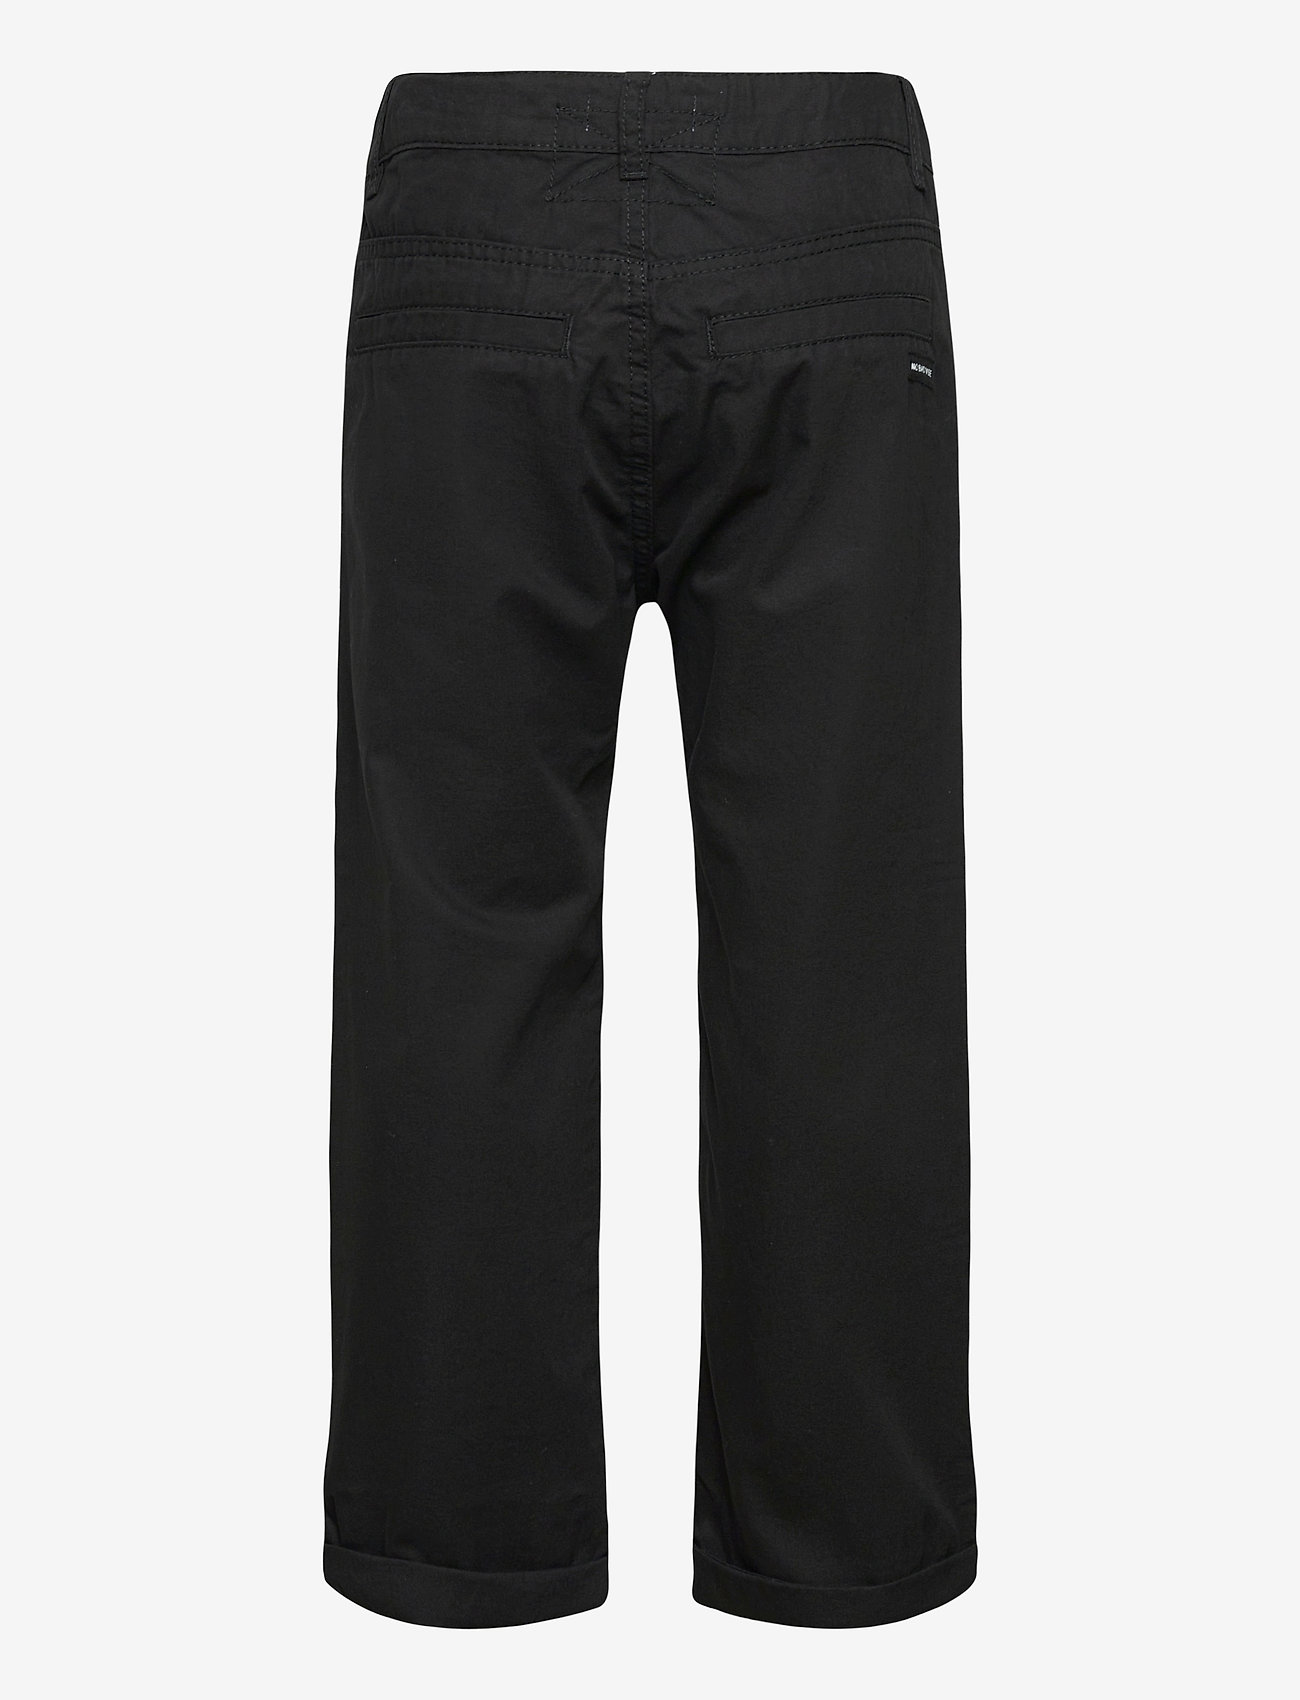 Lindex - Trousers chinos skatefit - trousers - black - 1